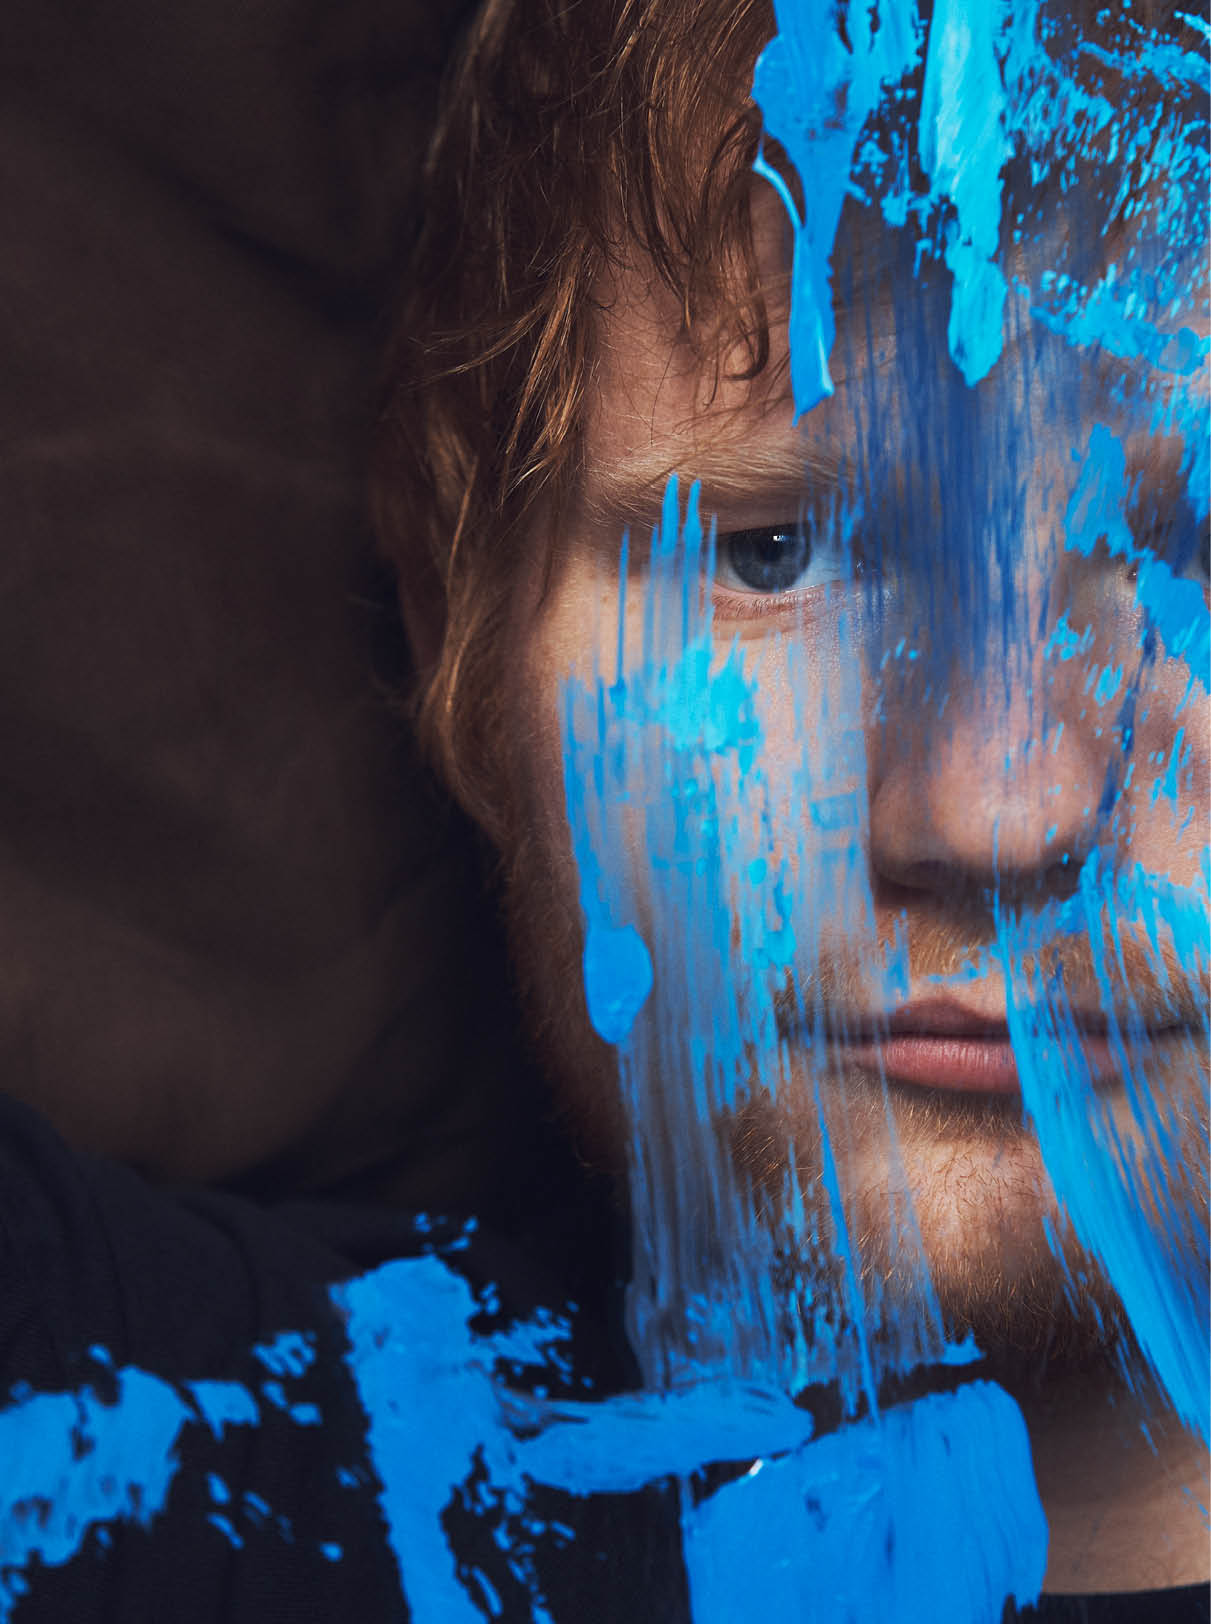 Nike Quotes Wallpaper Hd Iphone Across The Great Divide Ed Sheeran Interviewed Features